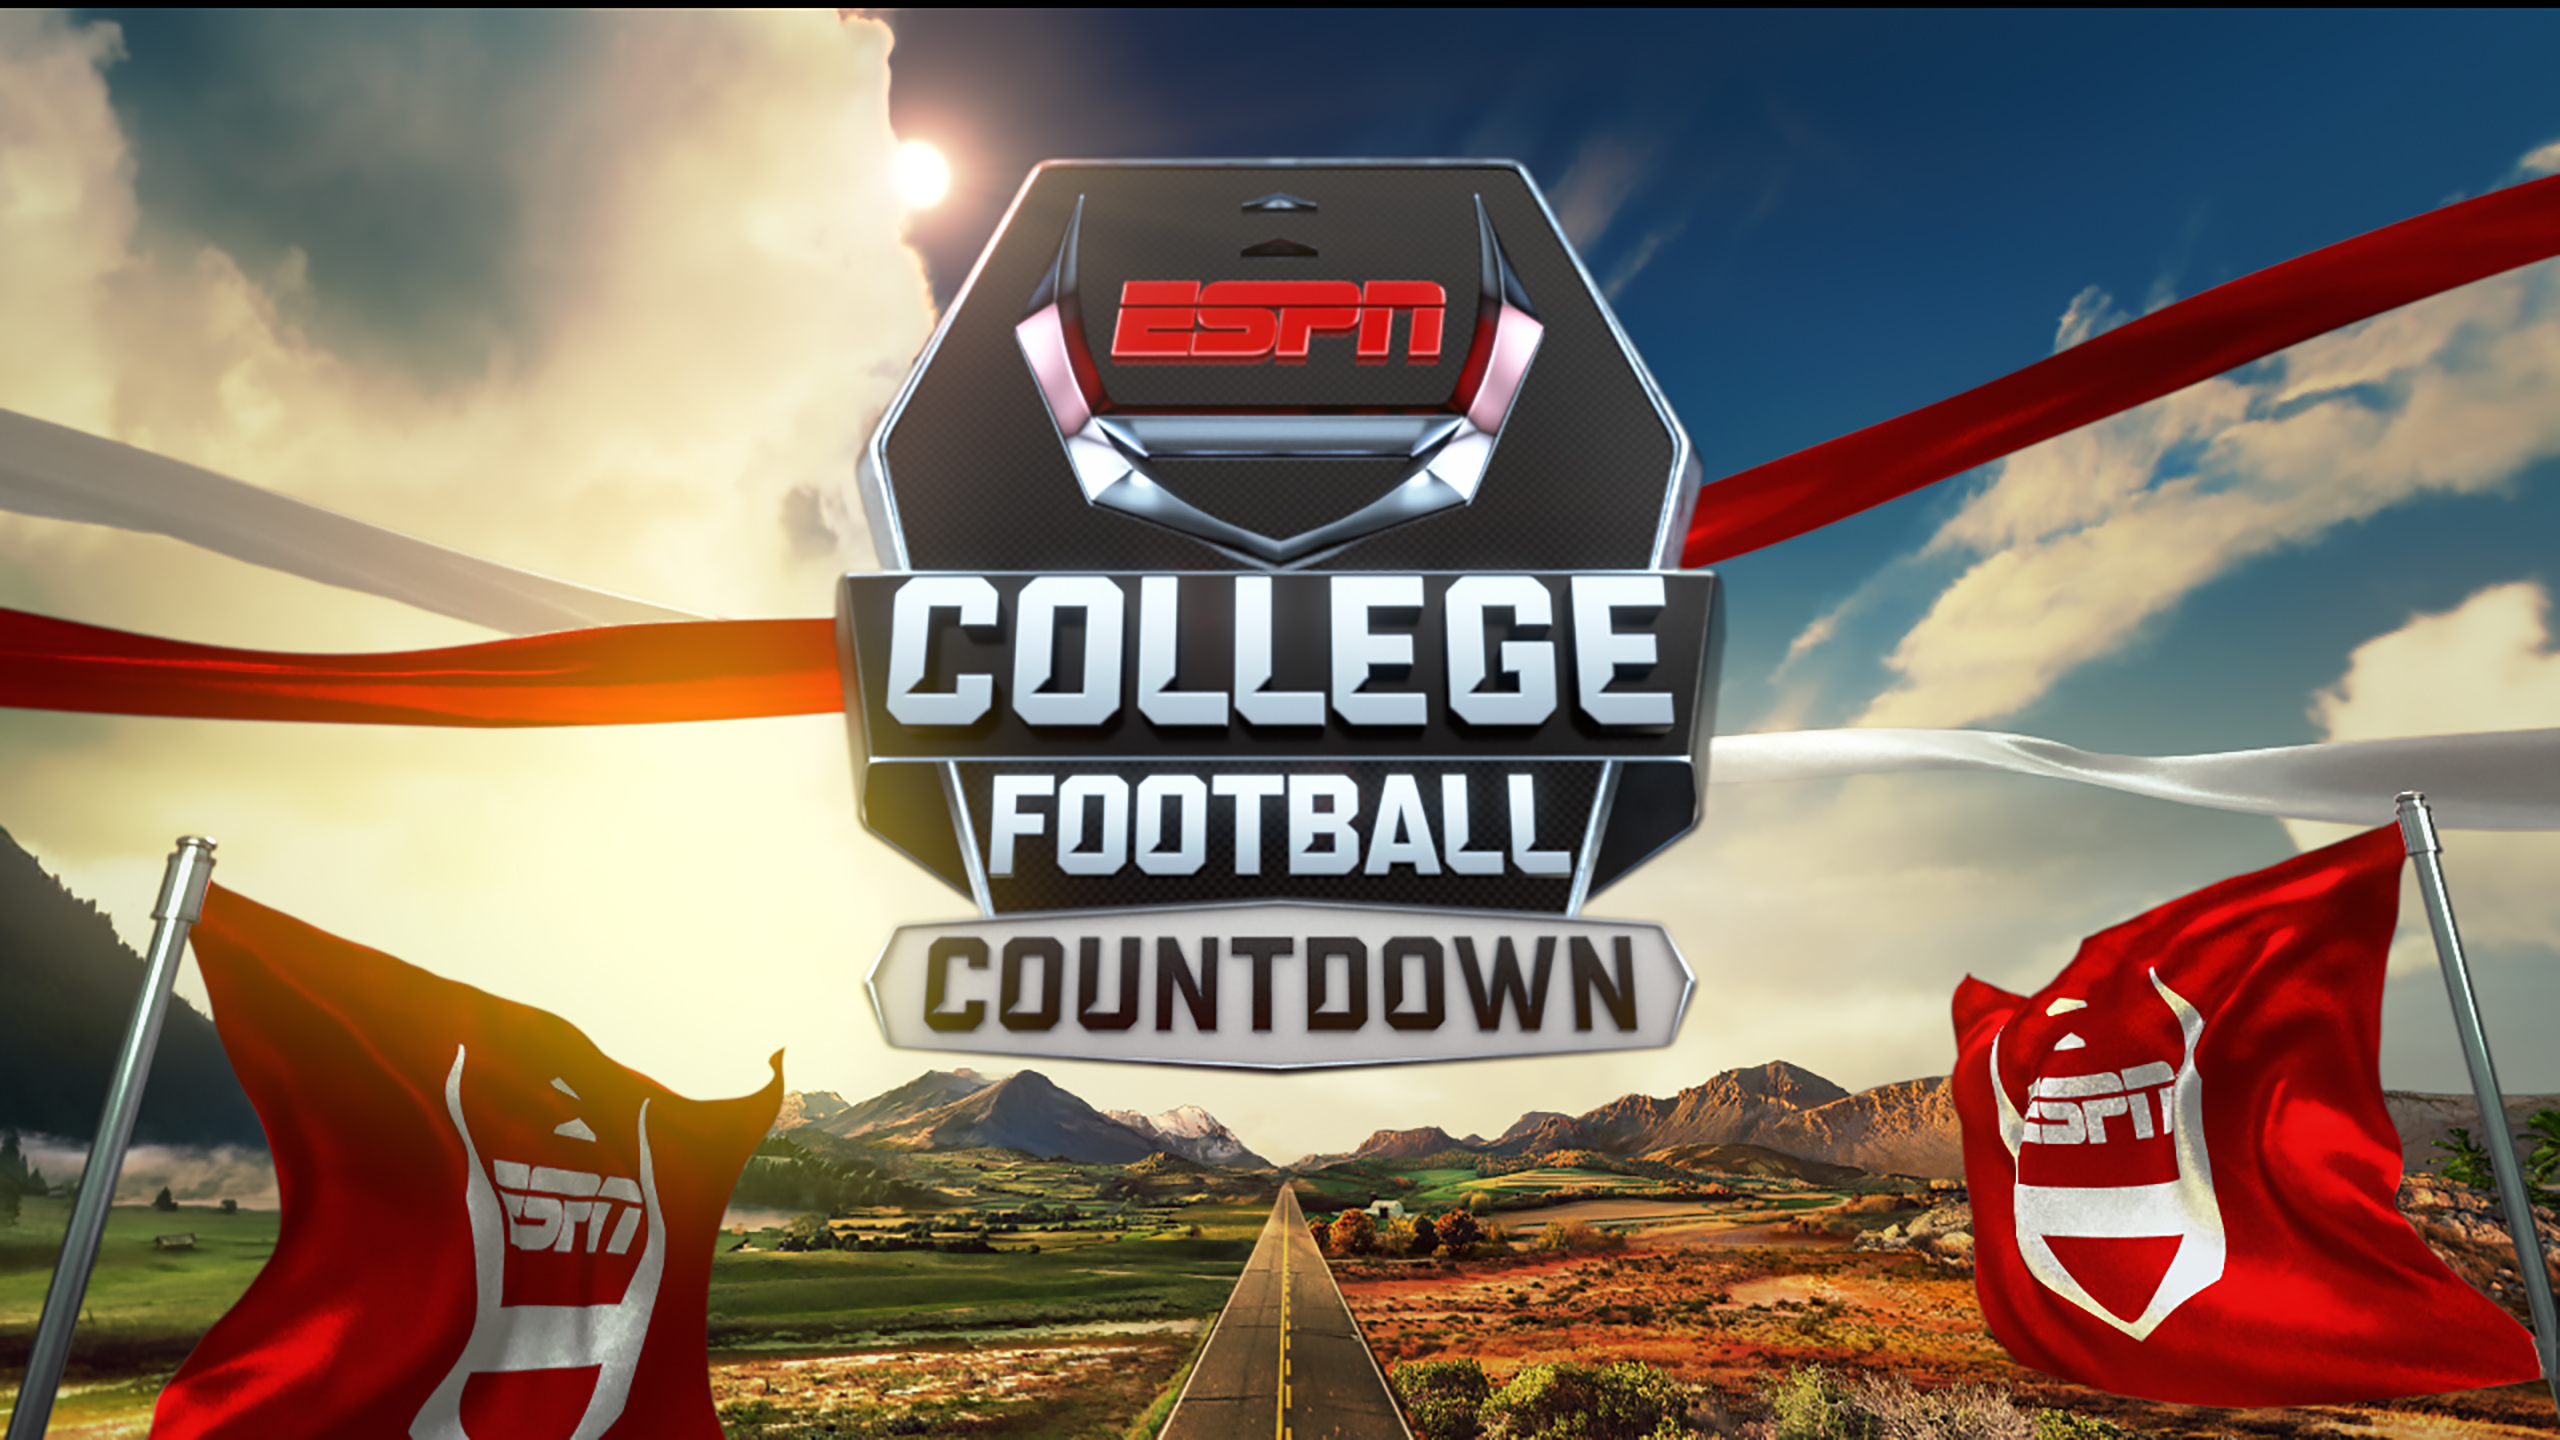 Thu, 11/15 - College Football Countdown Delivered by Papa John's